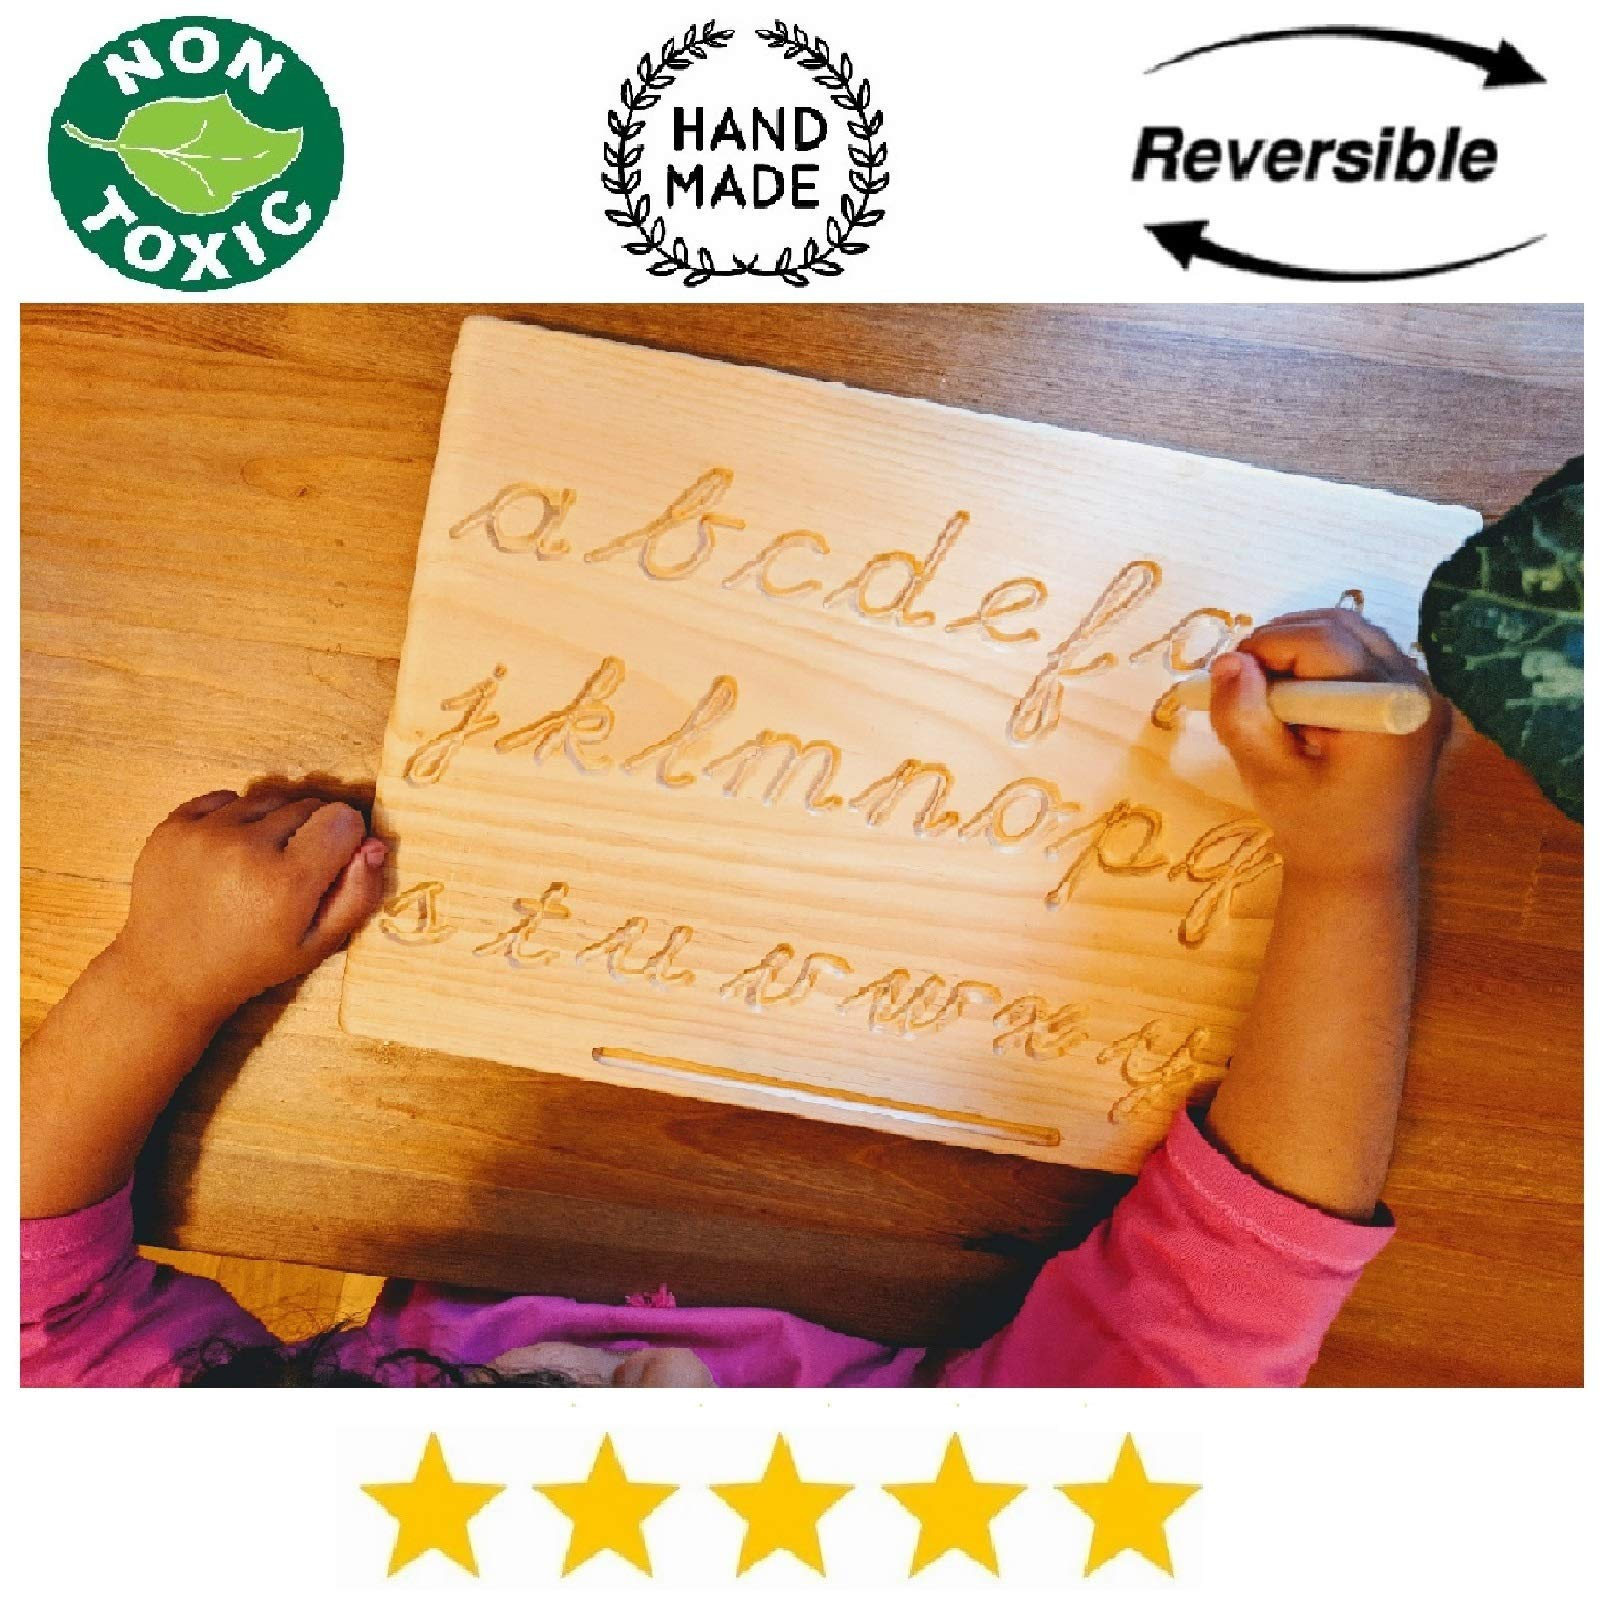 Reversible Montessori Cursive Alphabet | Lowercase+Uppercase | Cursive ABC Letters Tracing Board with Wooden Pen by Cosmo-Crafts ... (C- Reversible NO Color) by cosmo-crafts.com